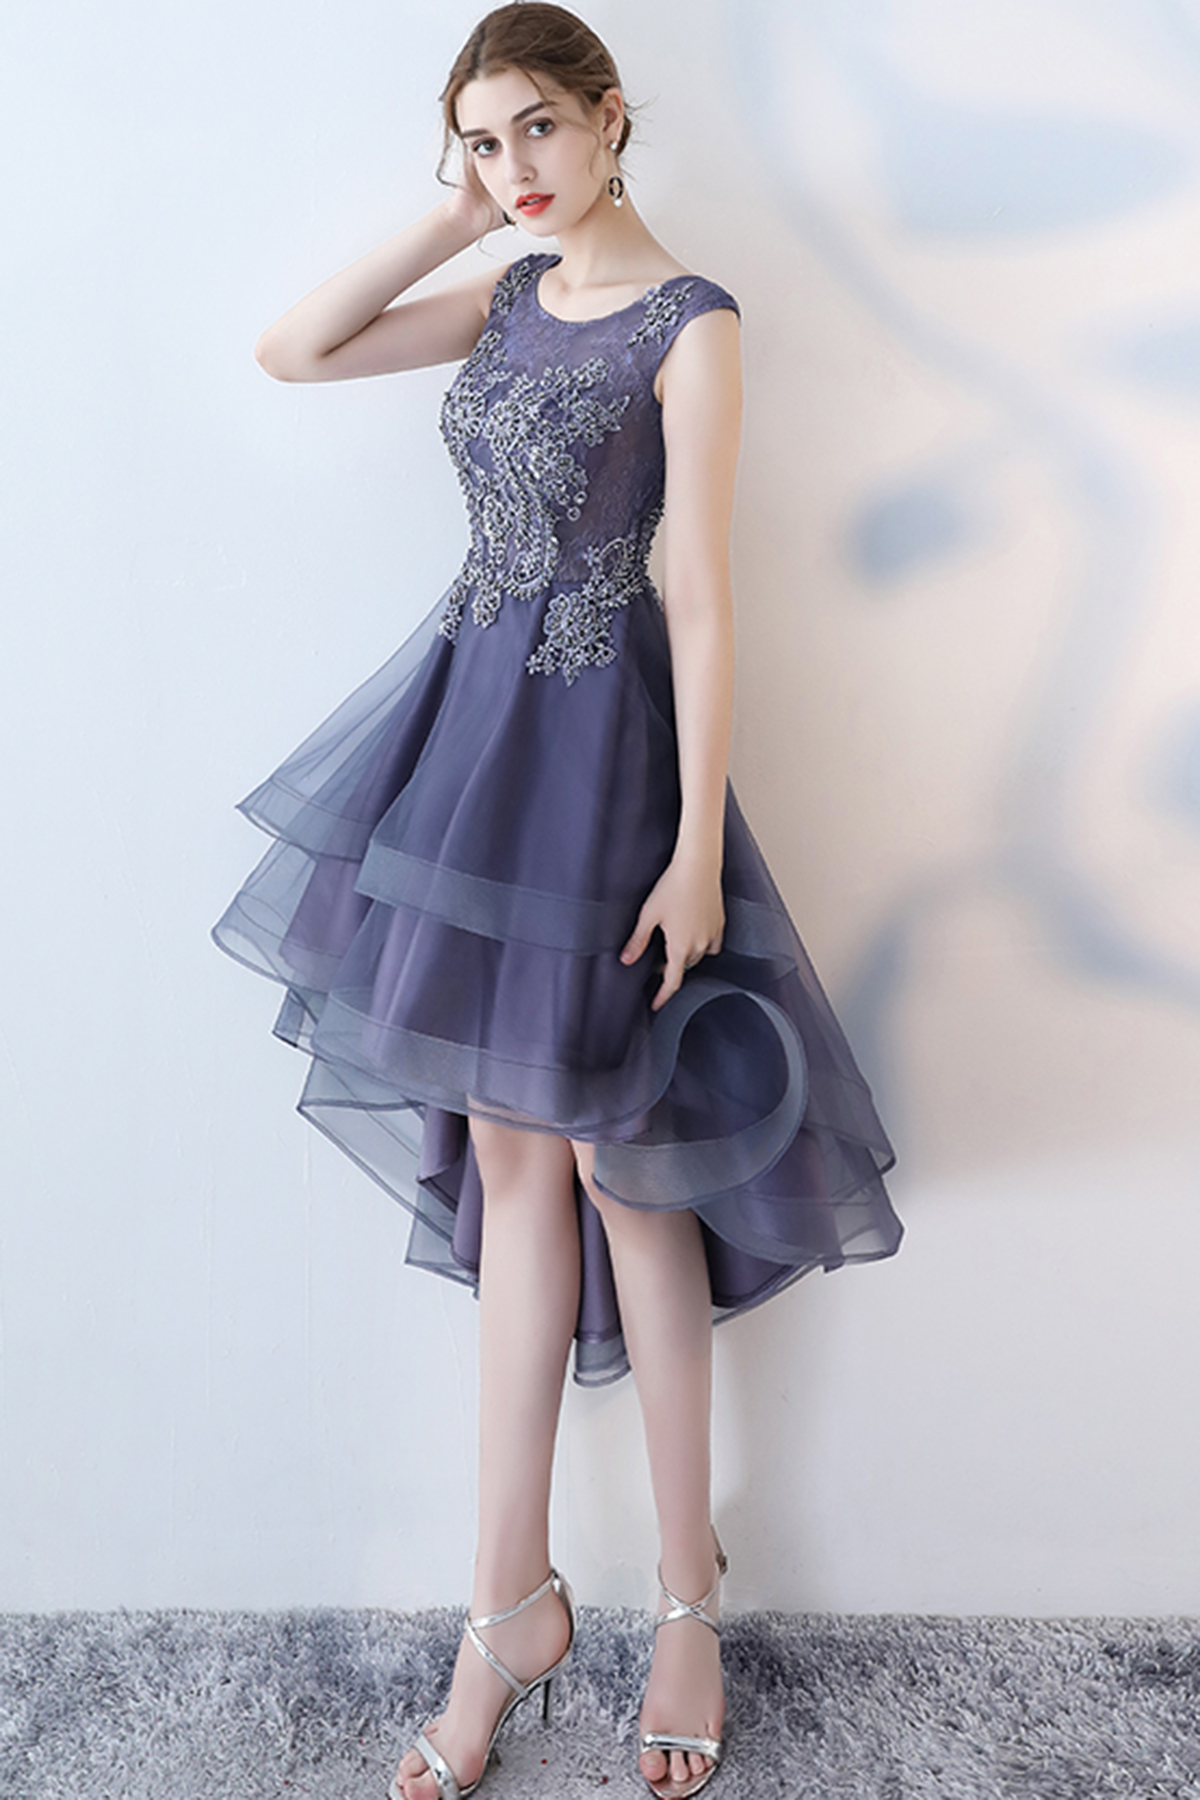 c1d9ba5746 Stylish navy blue tulle high low halter sleeves homecoming dress ...